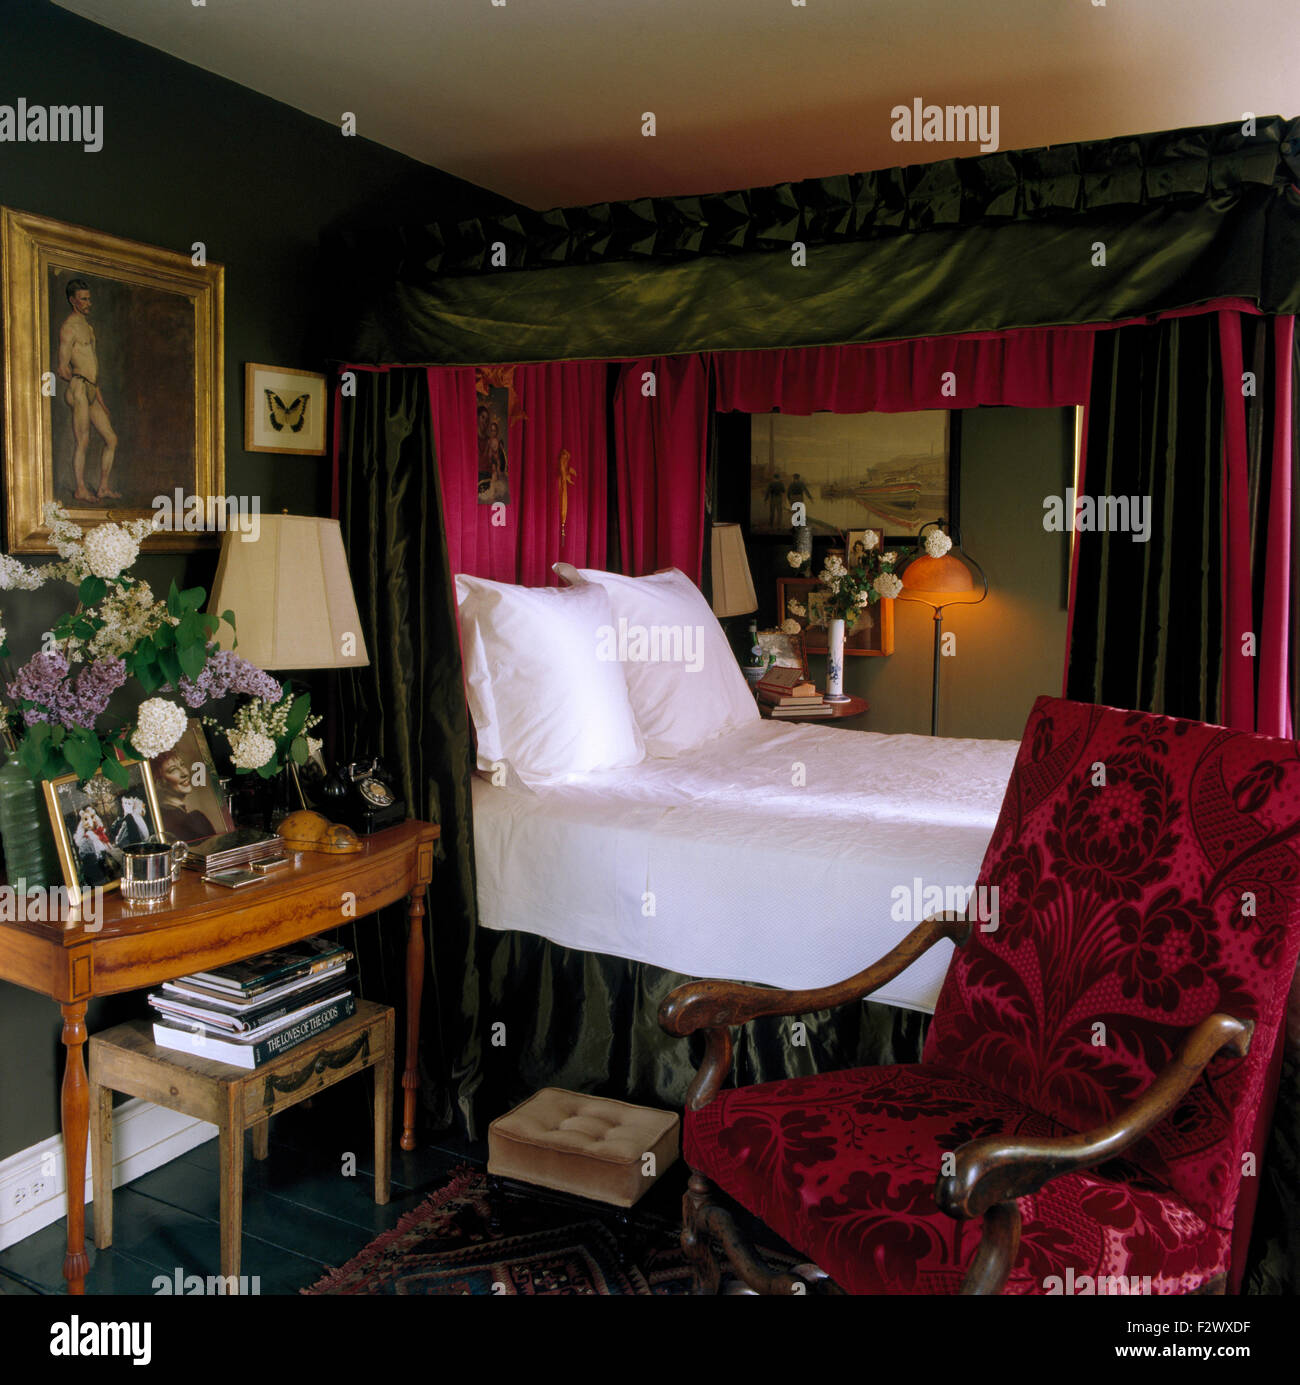 Wonderful Crisp White Linen And Pillows On Four Poster Bed With Green Silk Drapes  Lined With Red Silk In Opulent Eighties Bedroom